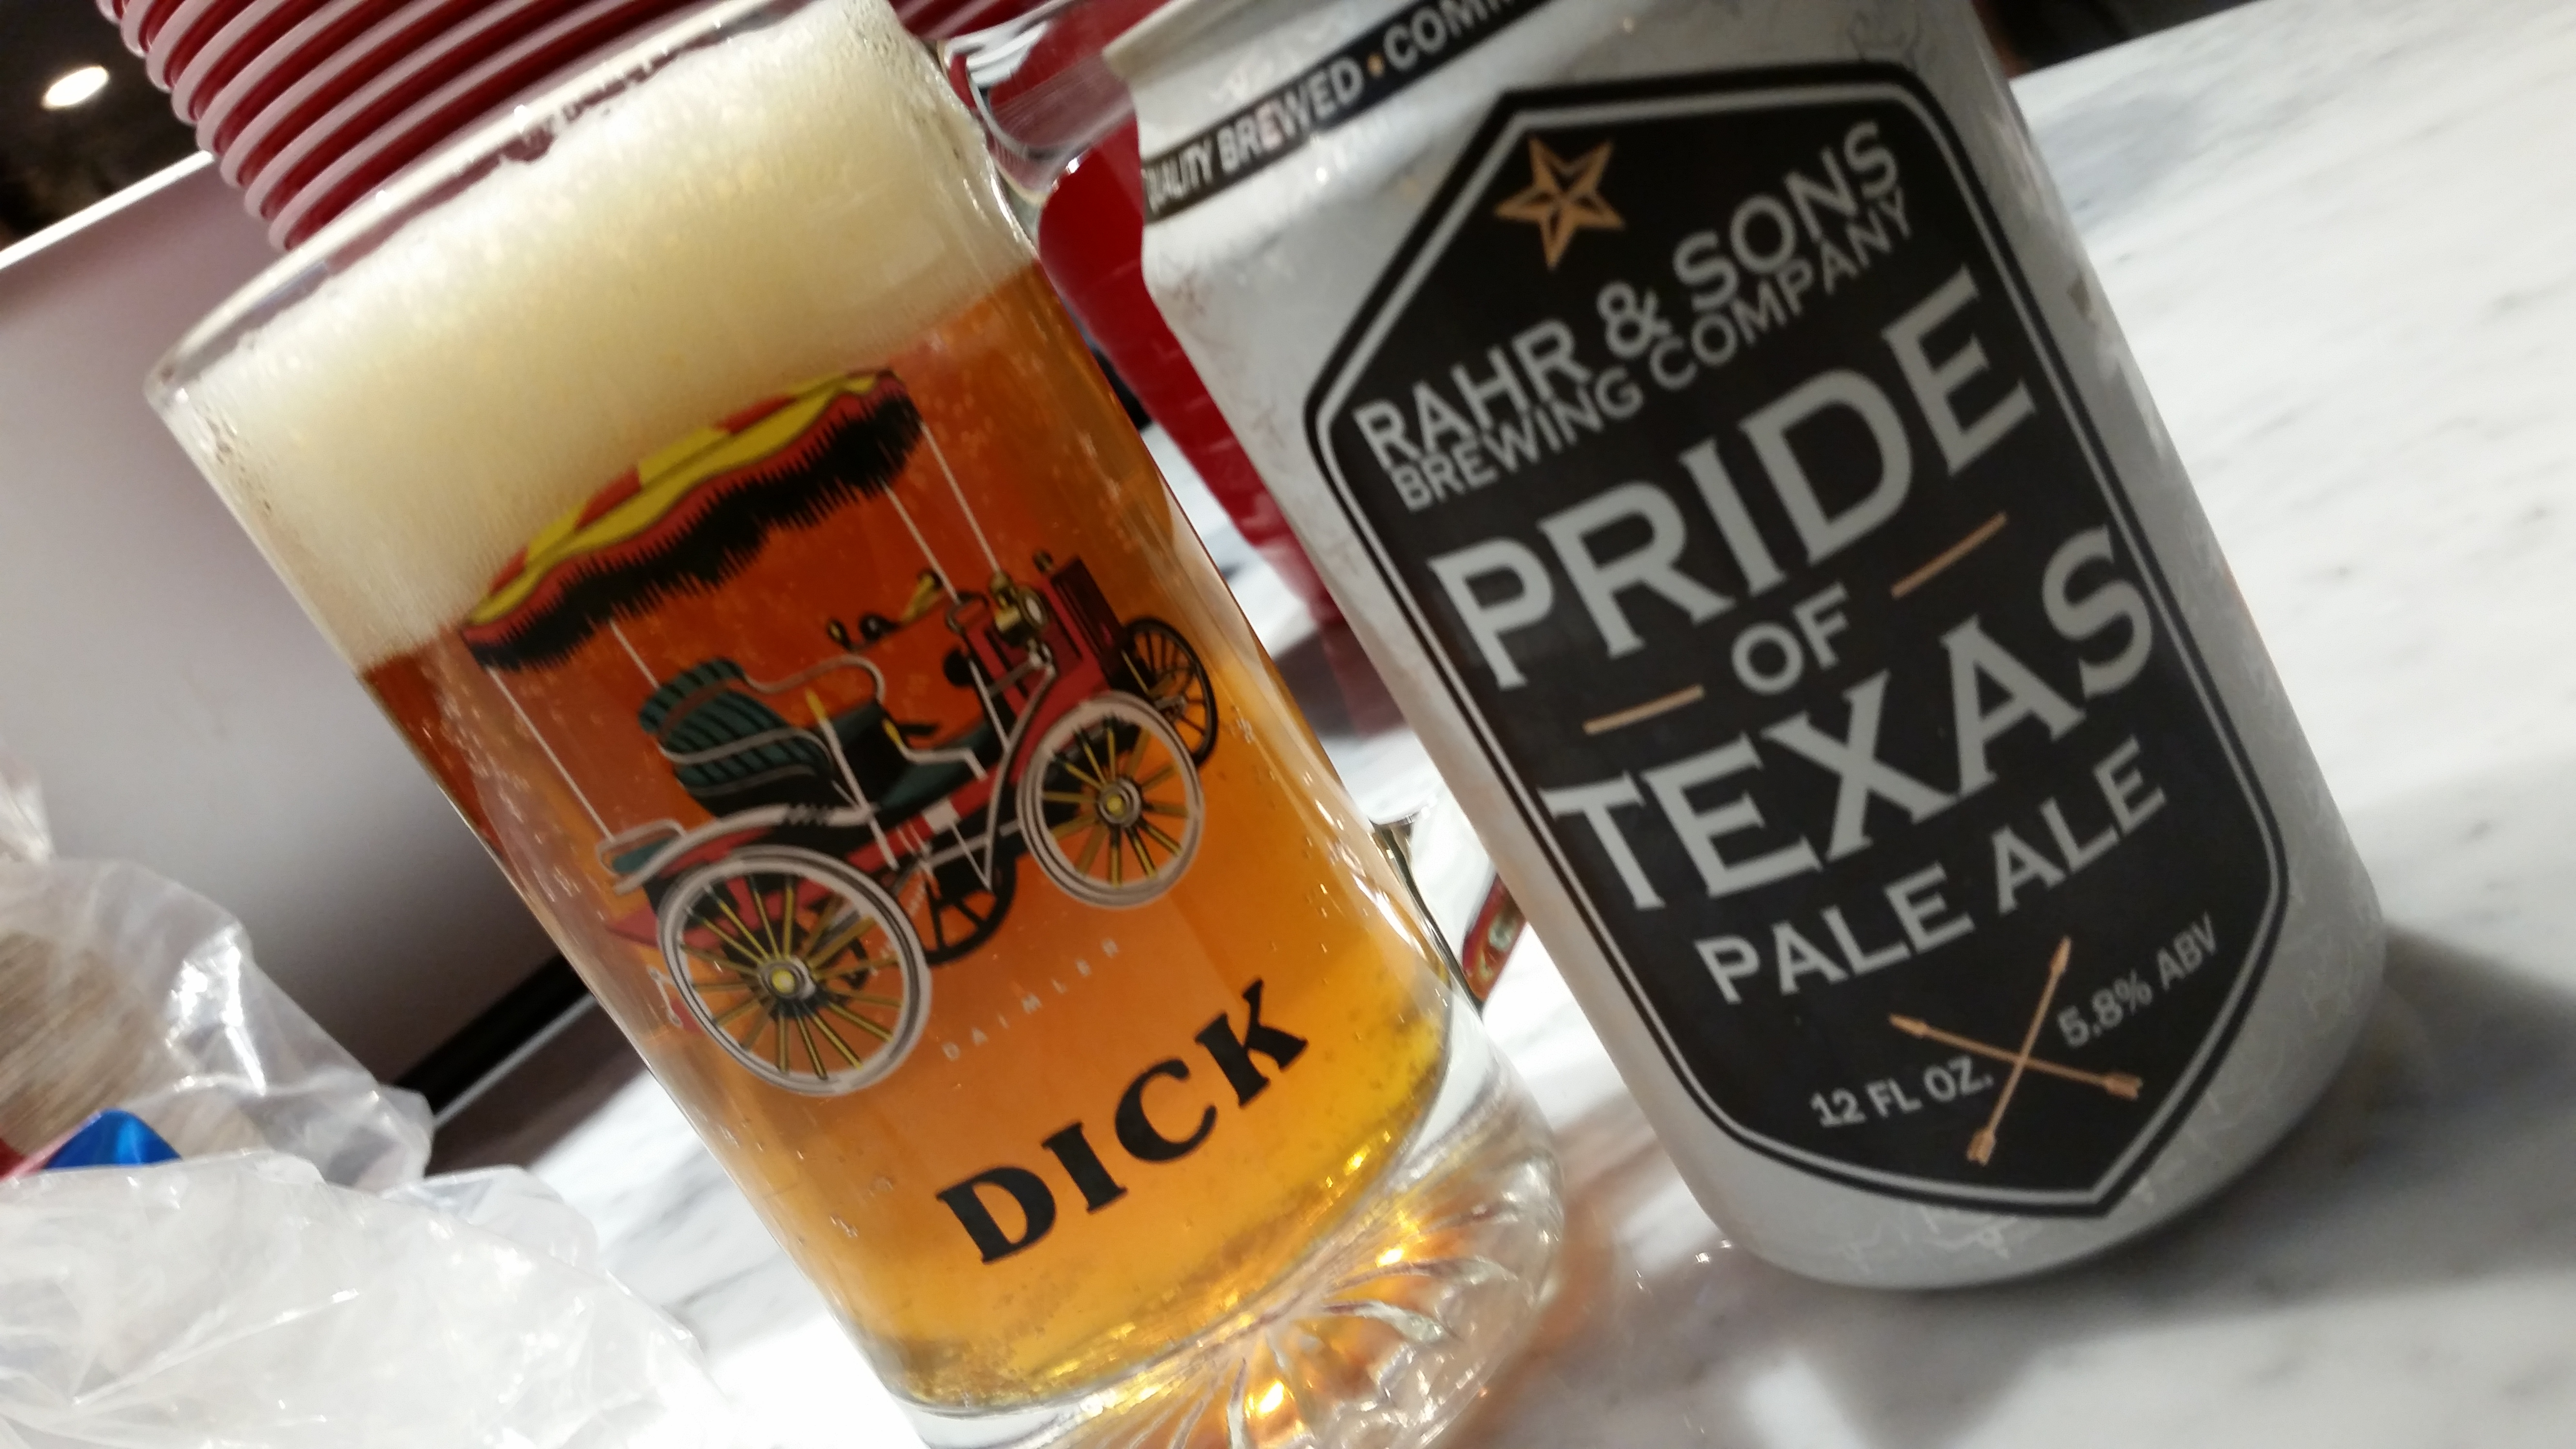 Rahr and Sons Pride of Texas Pale Ale